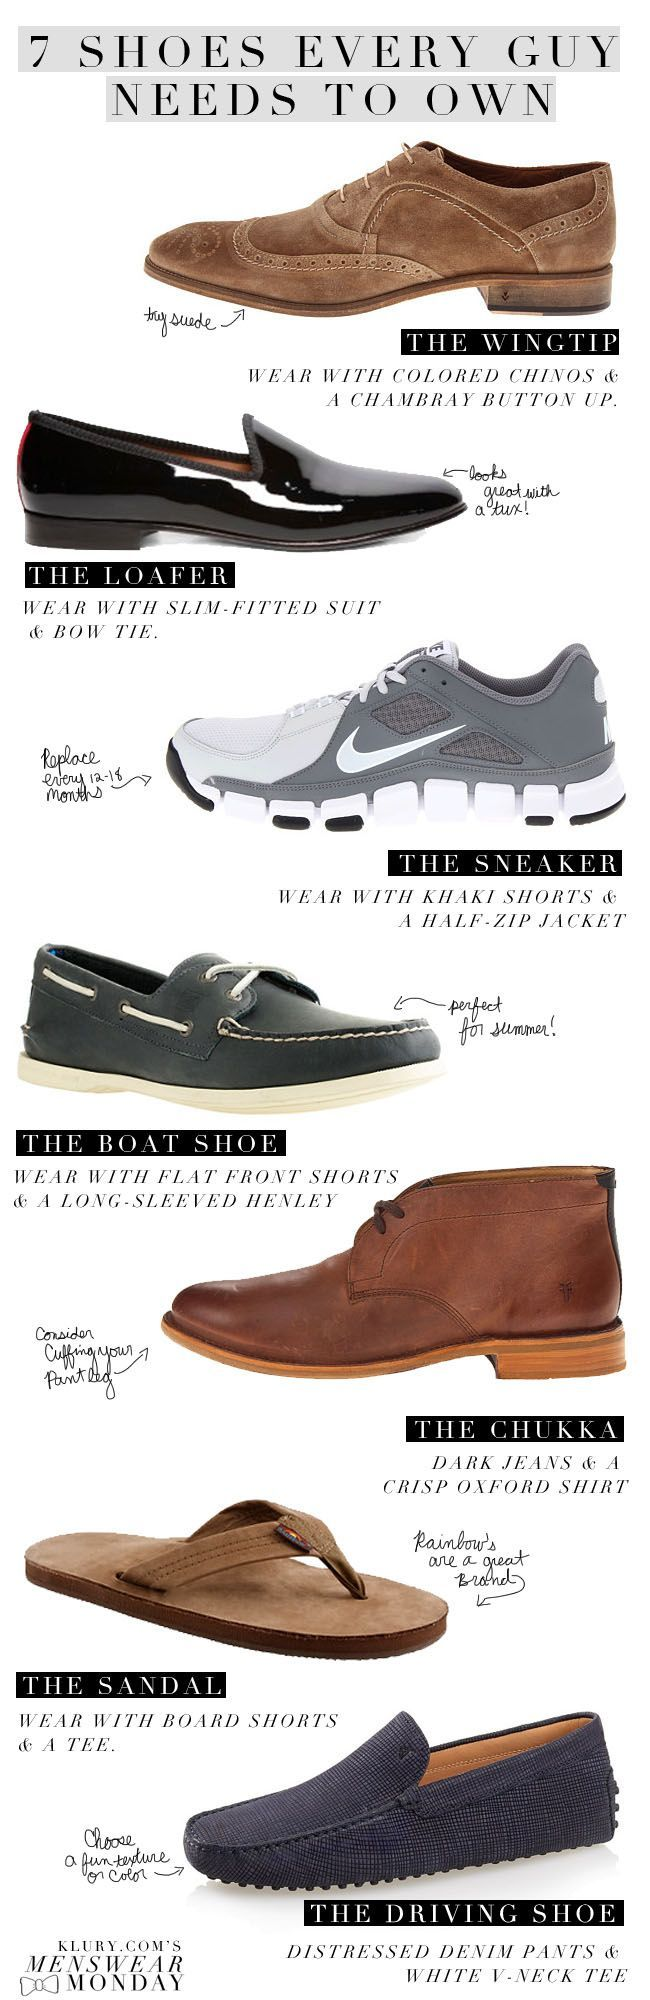 Shoes for every Gentleman #menstyle #shoes #infographic